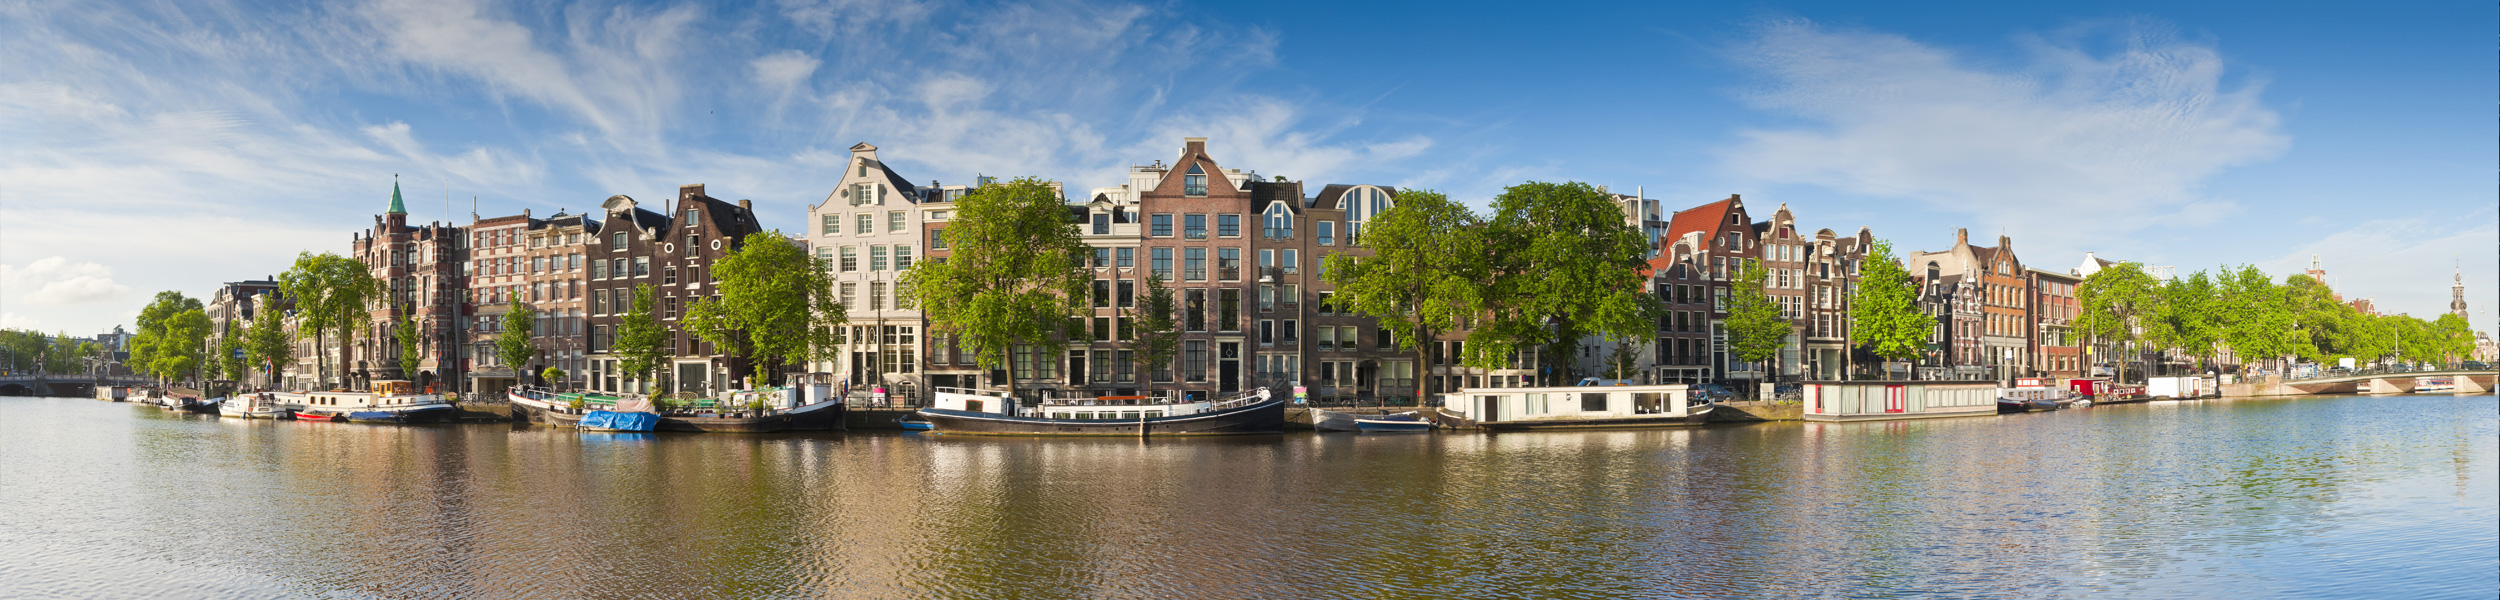 Systems Engineer Amsterdam, the Netherlands